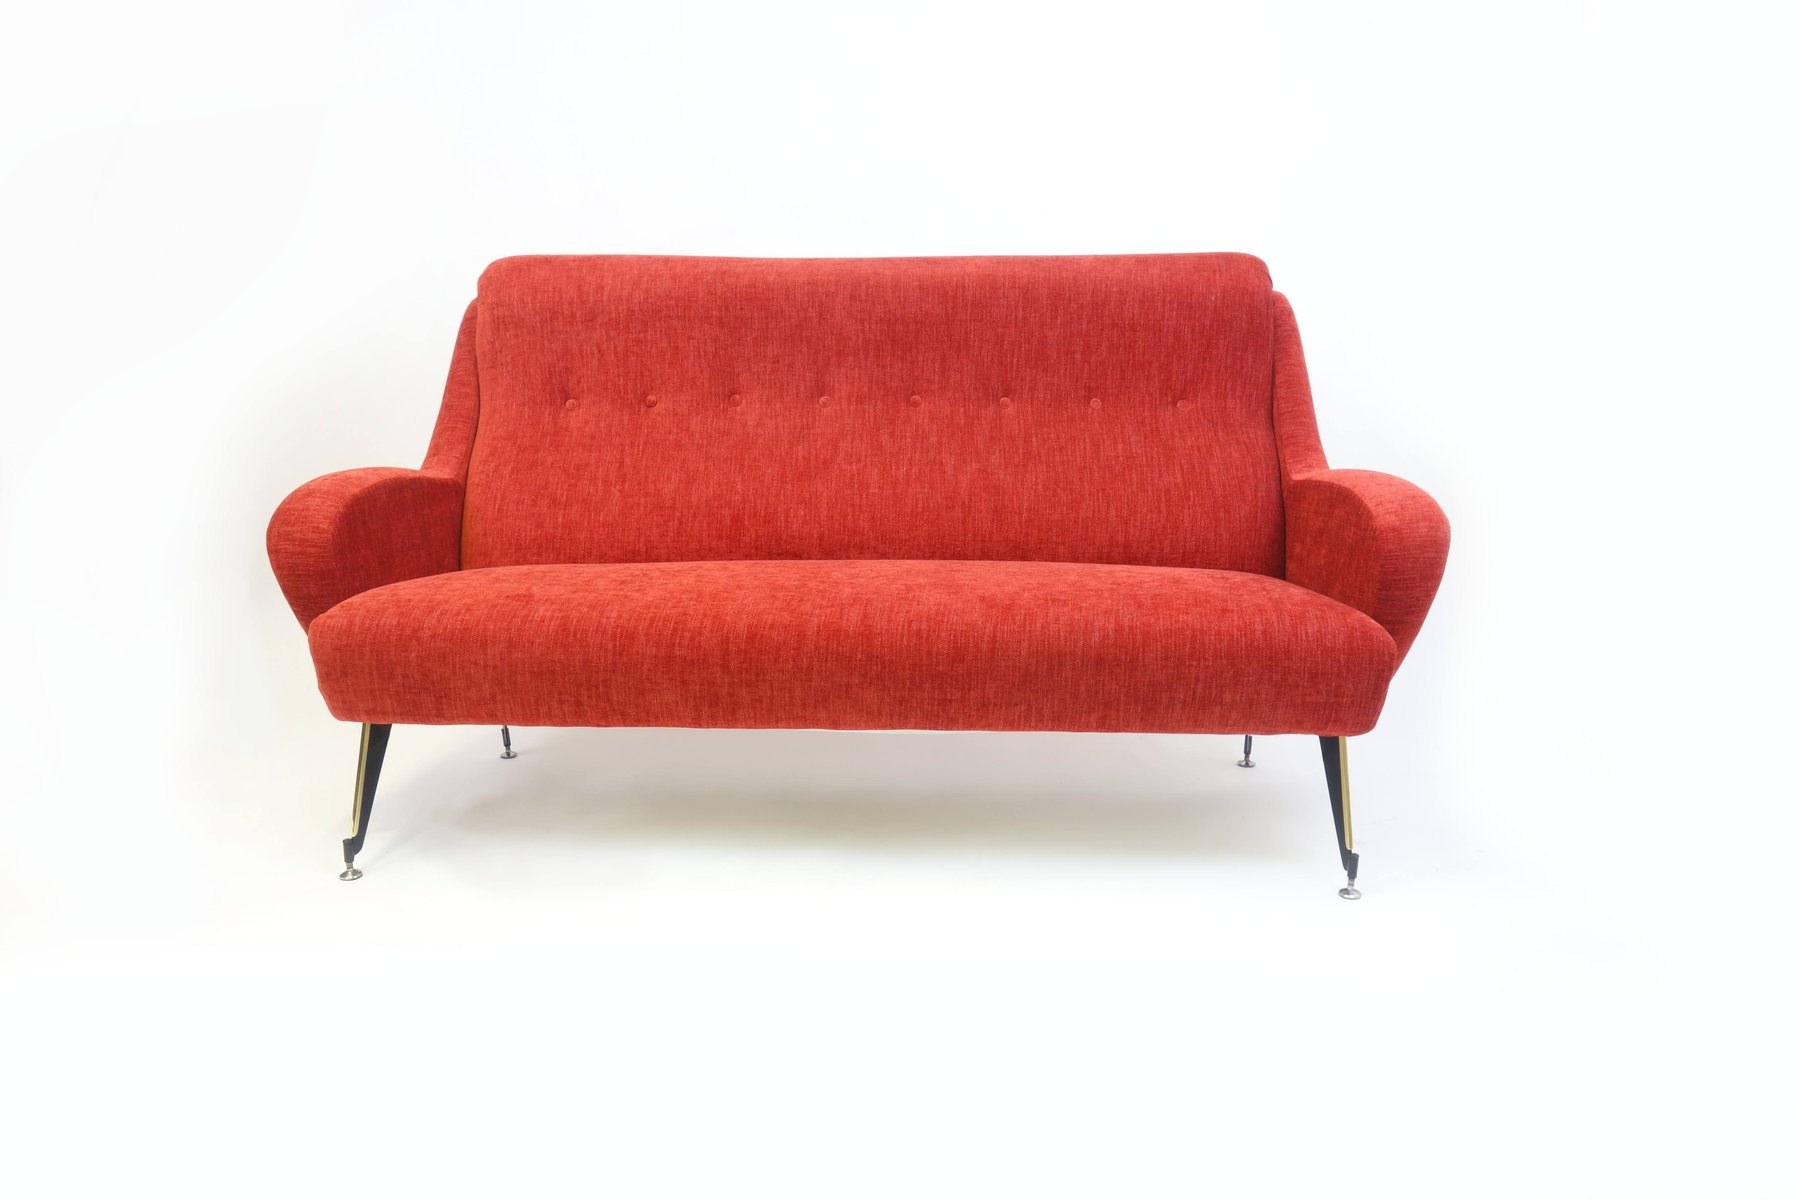 italian red velvet three seater sofa 1960s for sale at pamono. Black Bedroom Furniture Sets. Home Design Ideas